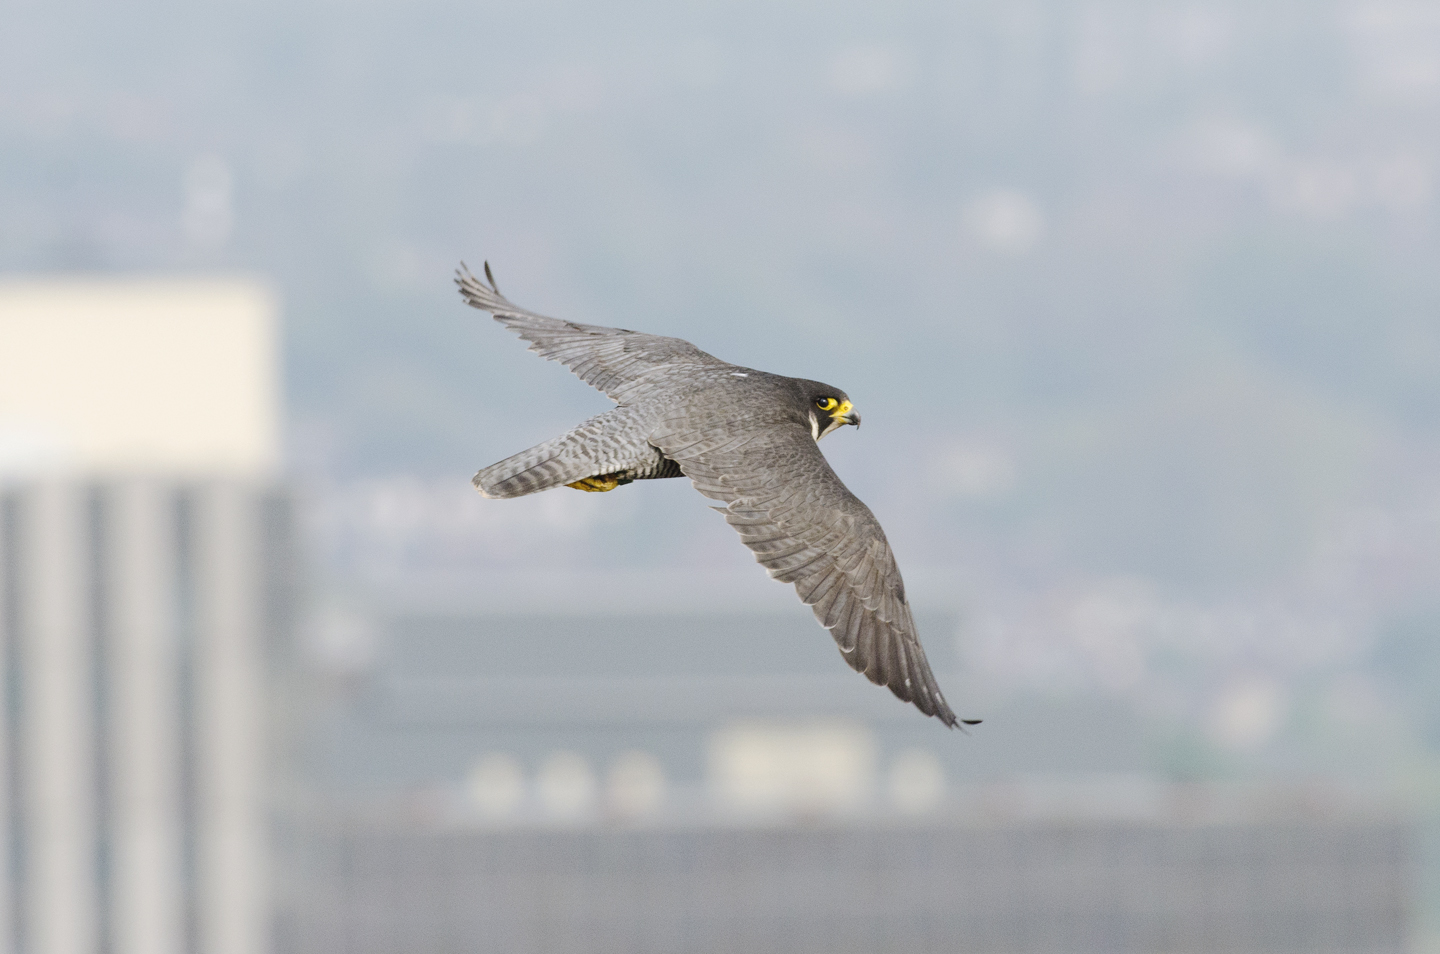 Long pointed wings, powerful shoulders and a hooked bill, they are formidable and ready to find territories of their own